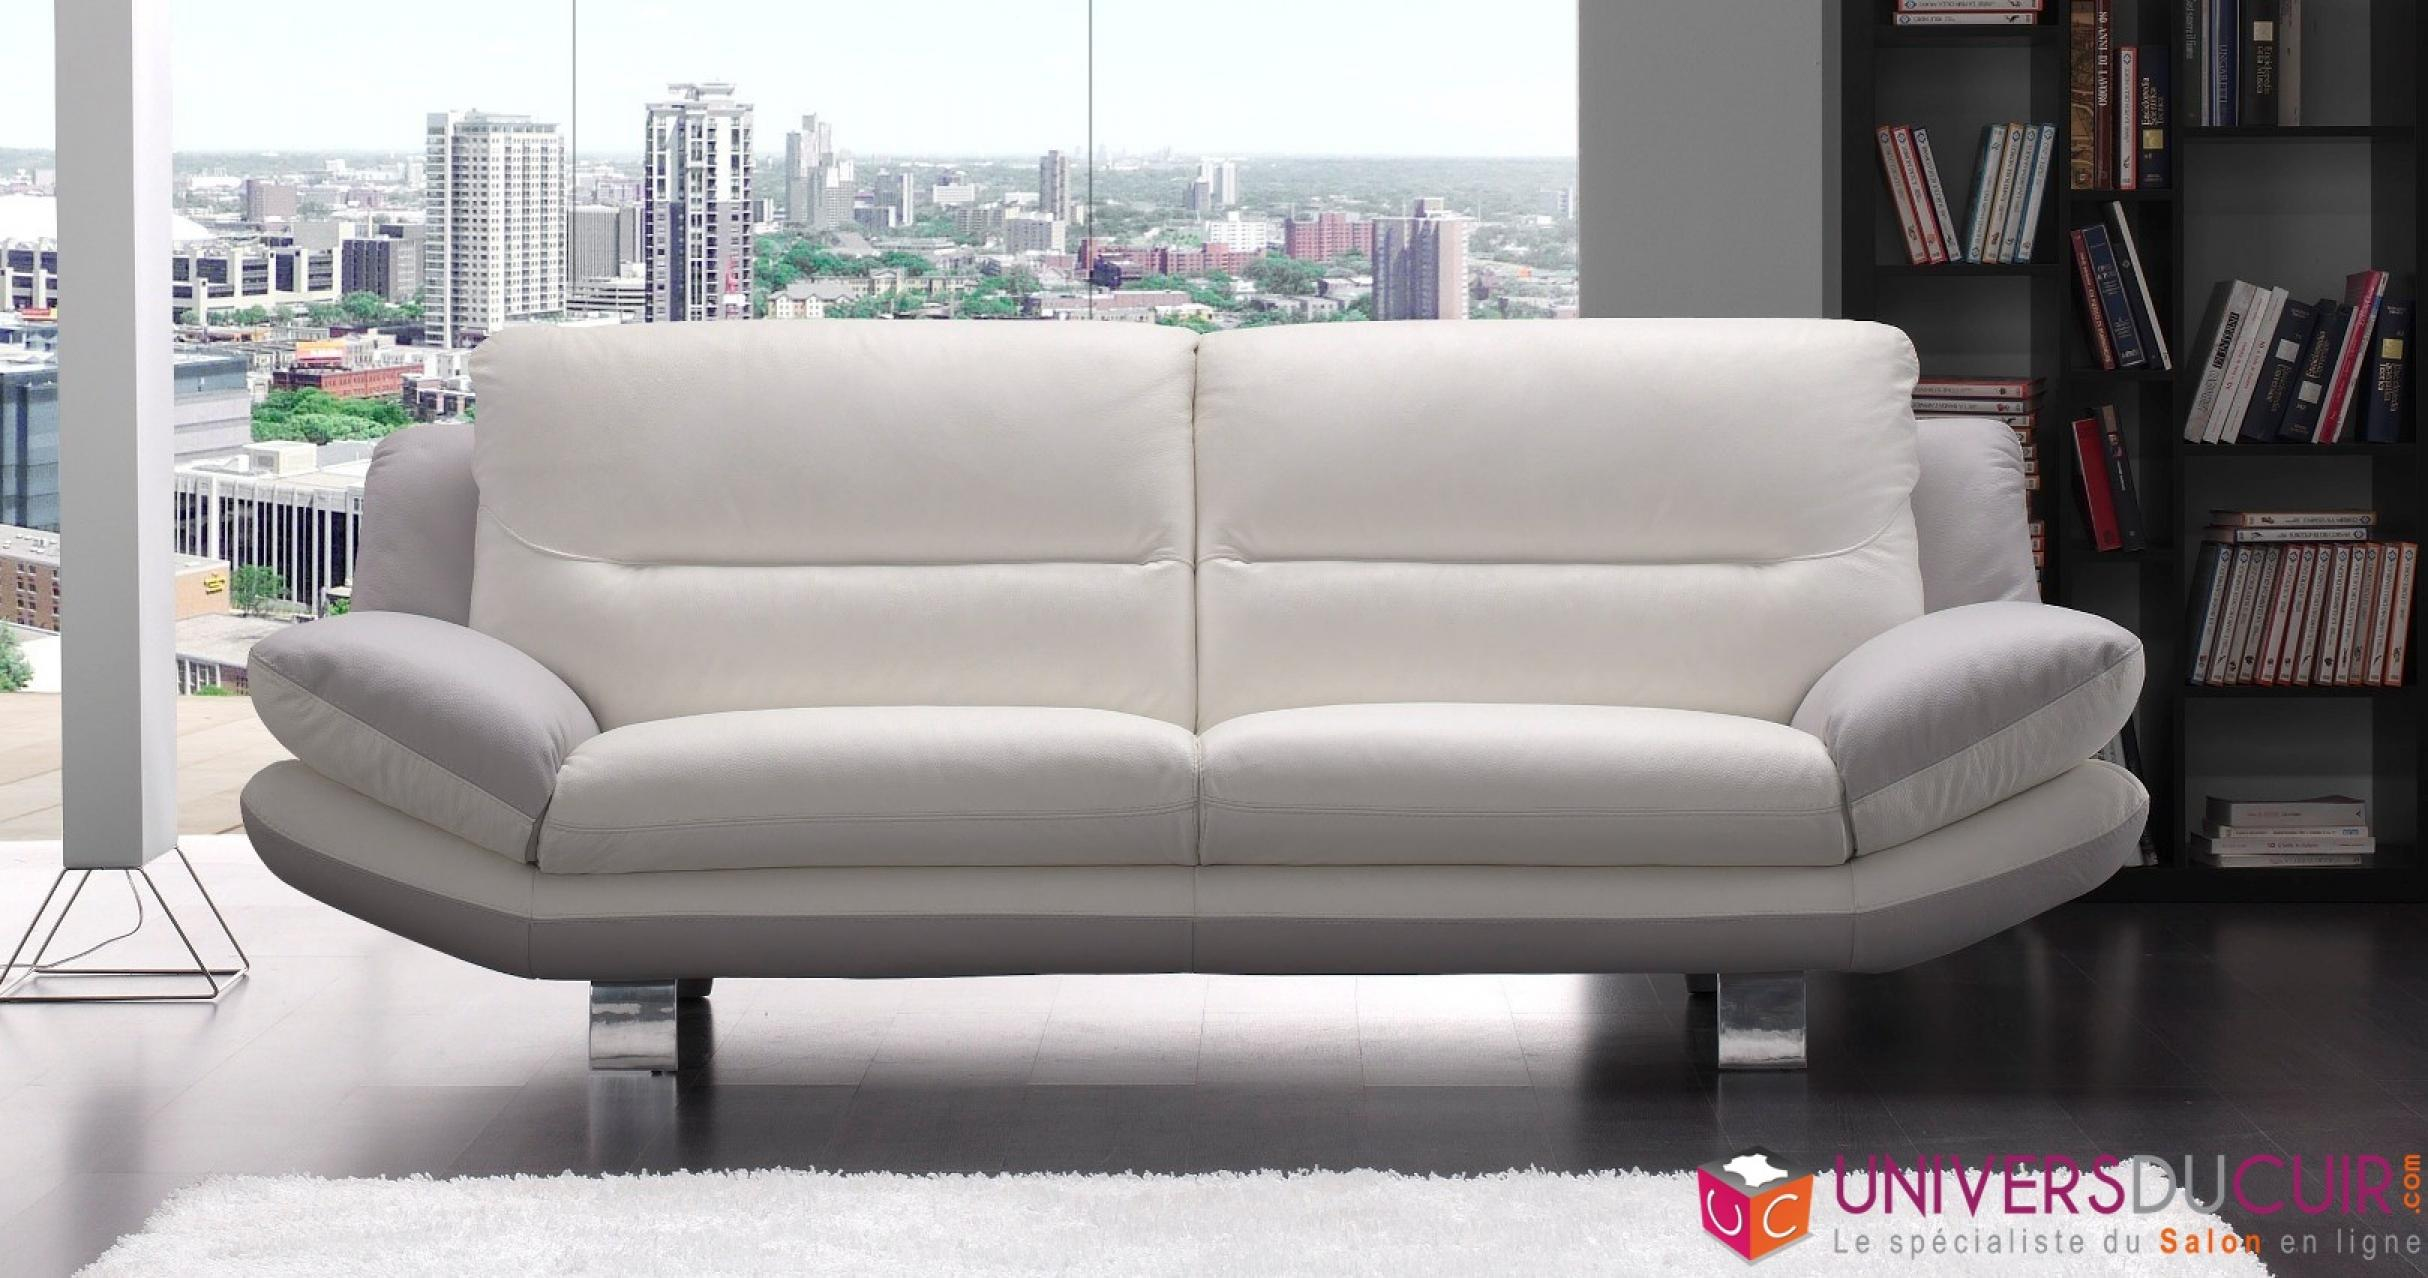 Canapé Italien Direct Usine Unique Stock Canap Italien sofa Stunning Canap Design Italien with Canap Italien